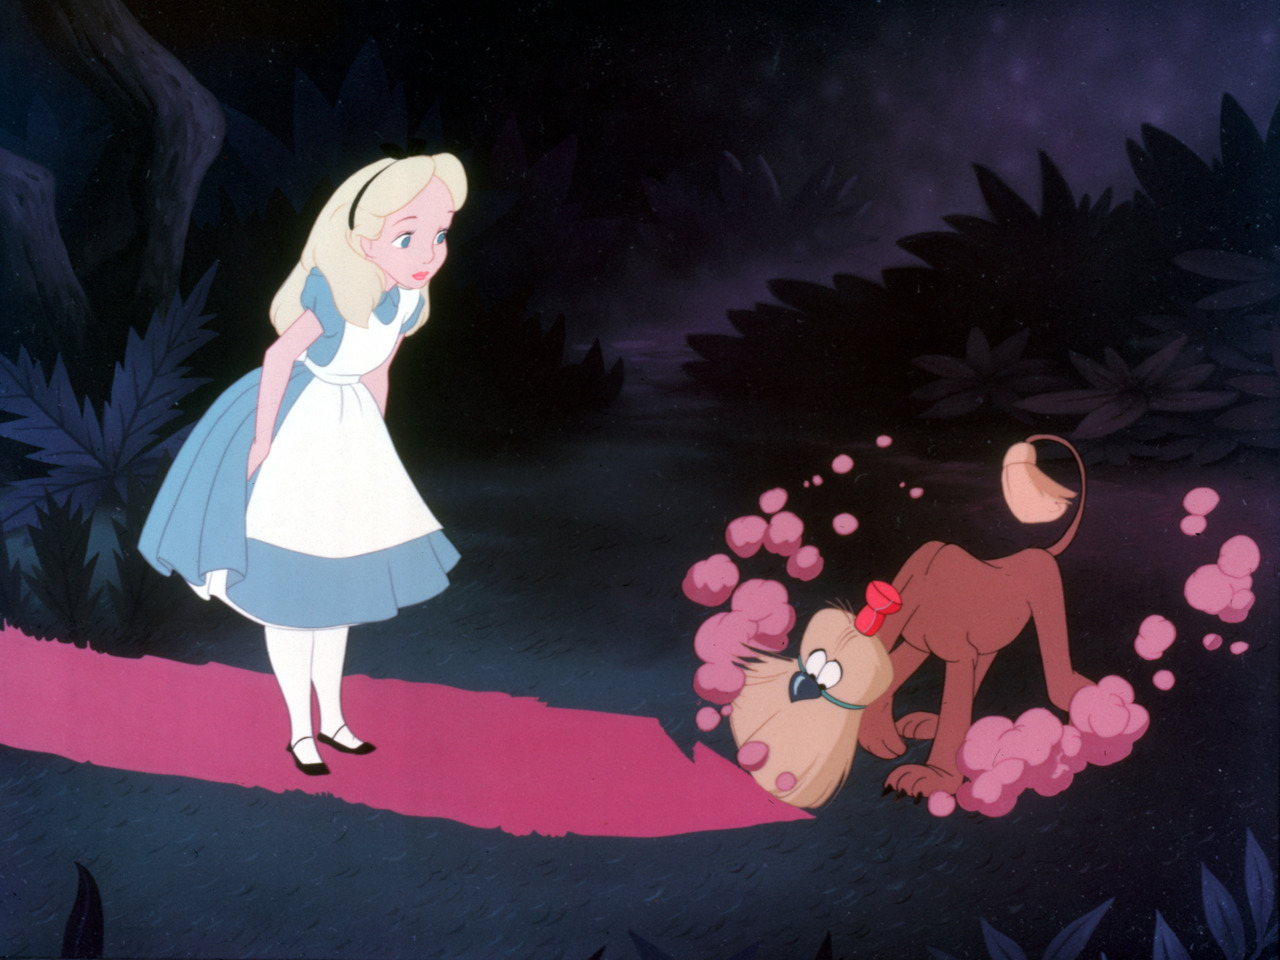 Alice in Wonderlands, lost in the forest. Disney.